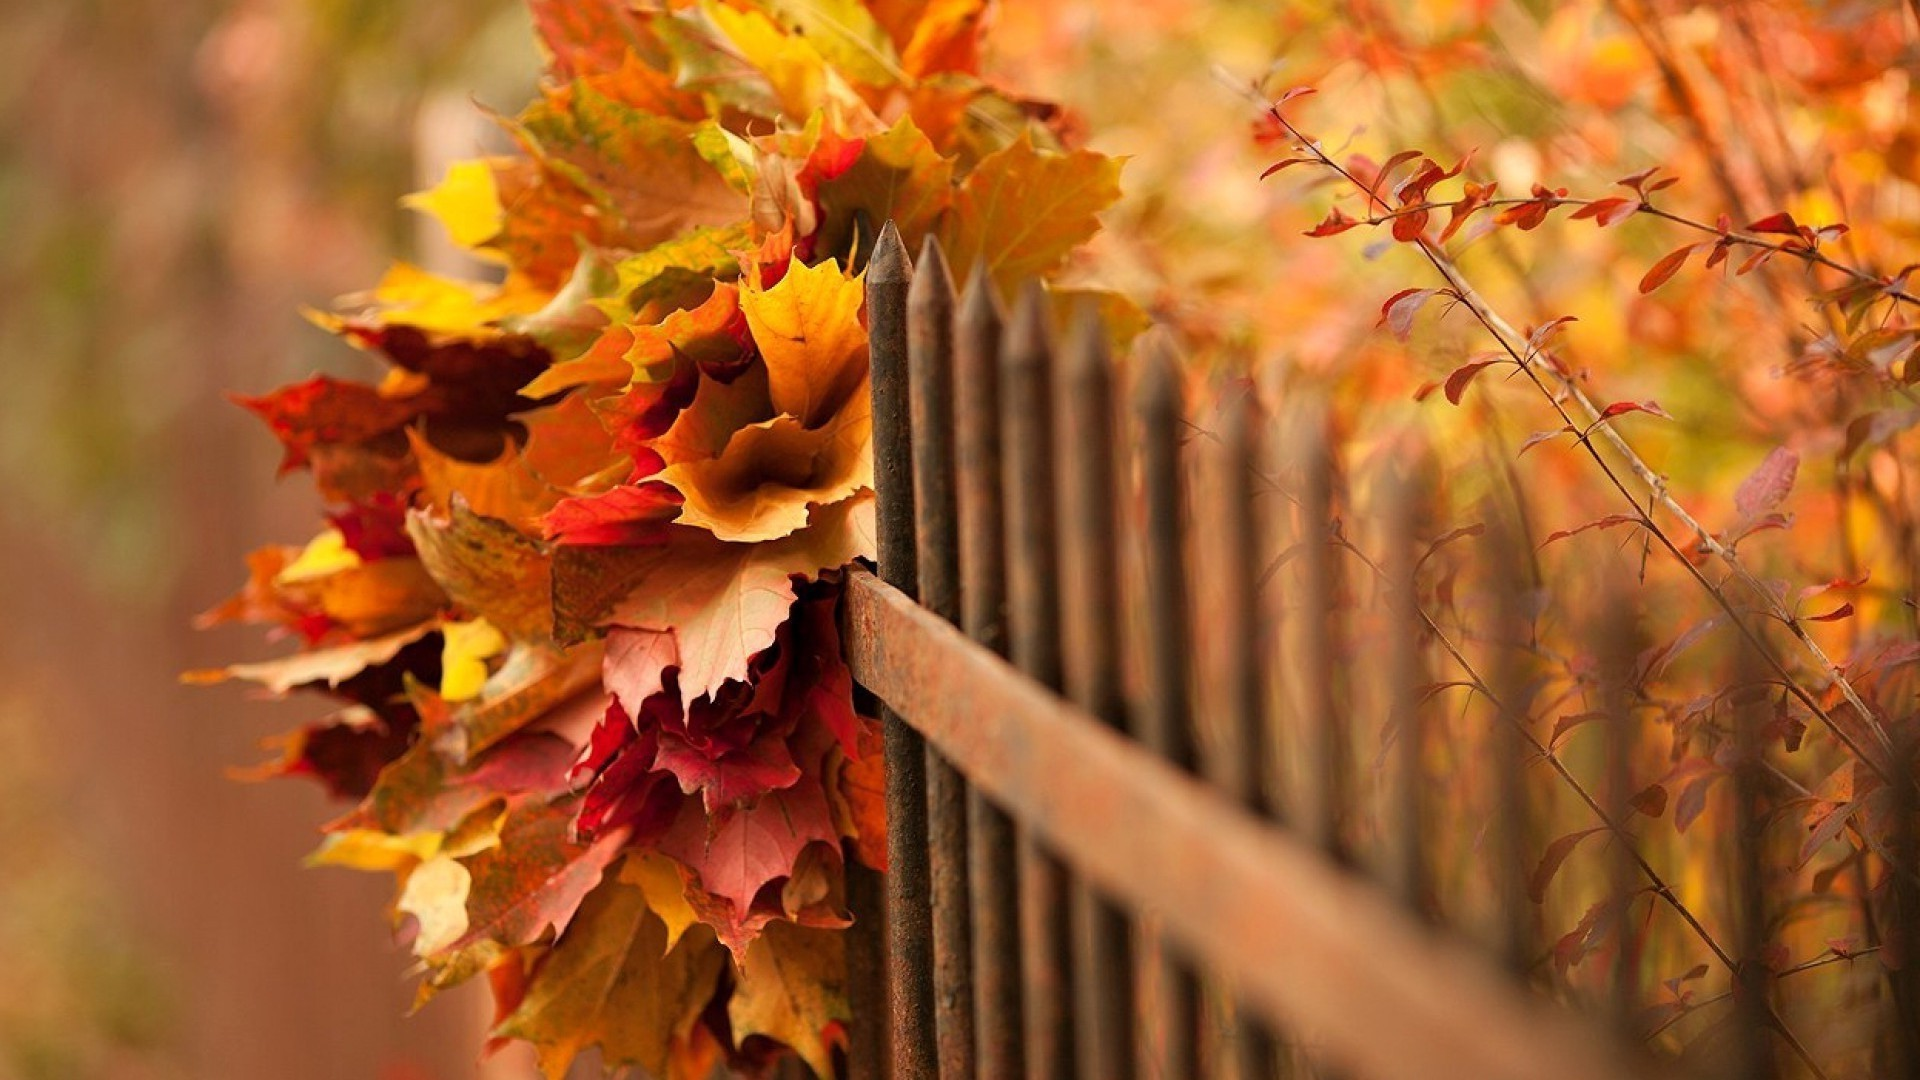 Free Fall Leaves Desktop Wallpaper Nature Trees Leaves Fall Branch Wood Fence Depth Of